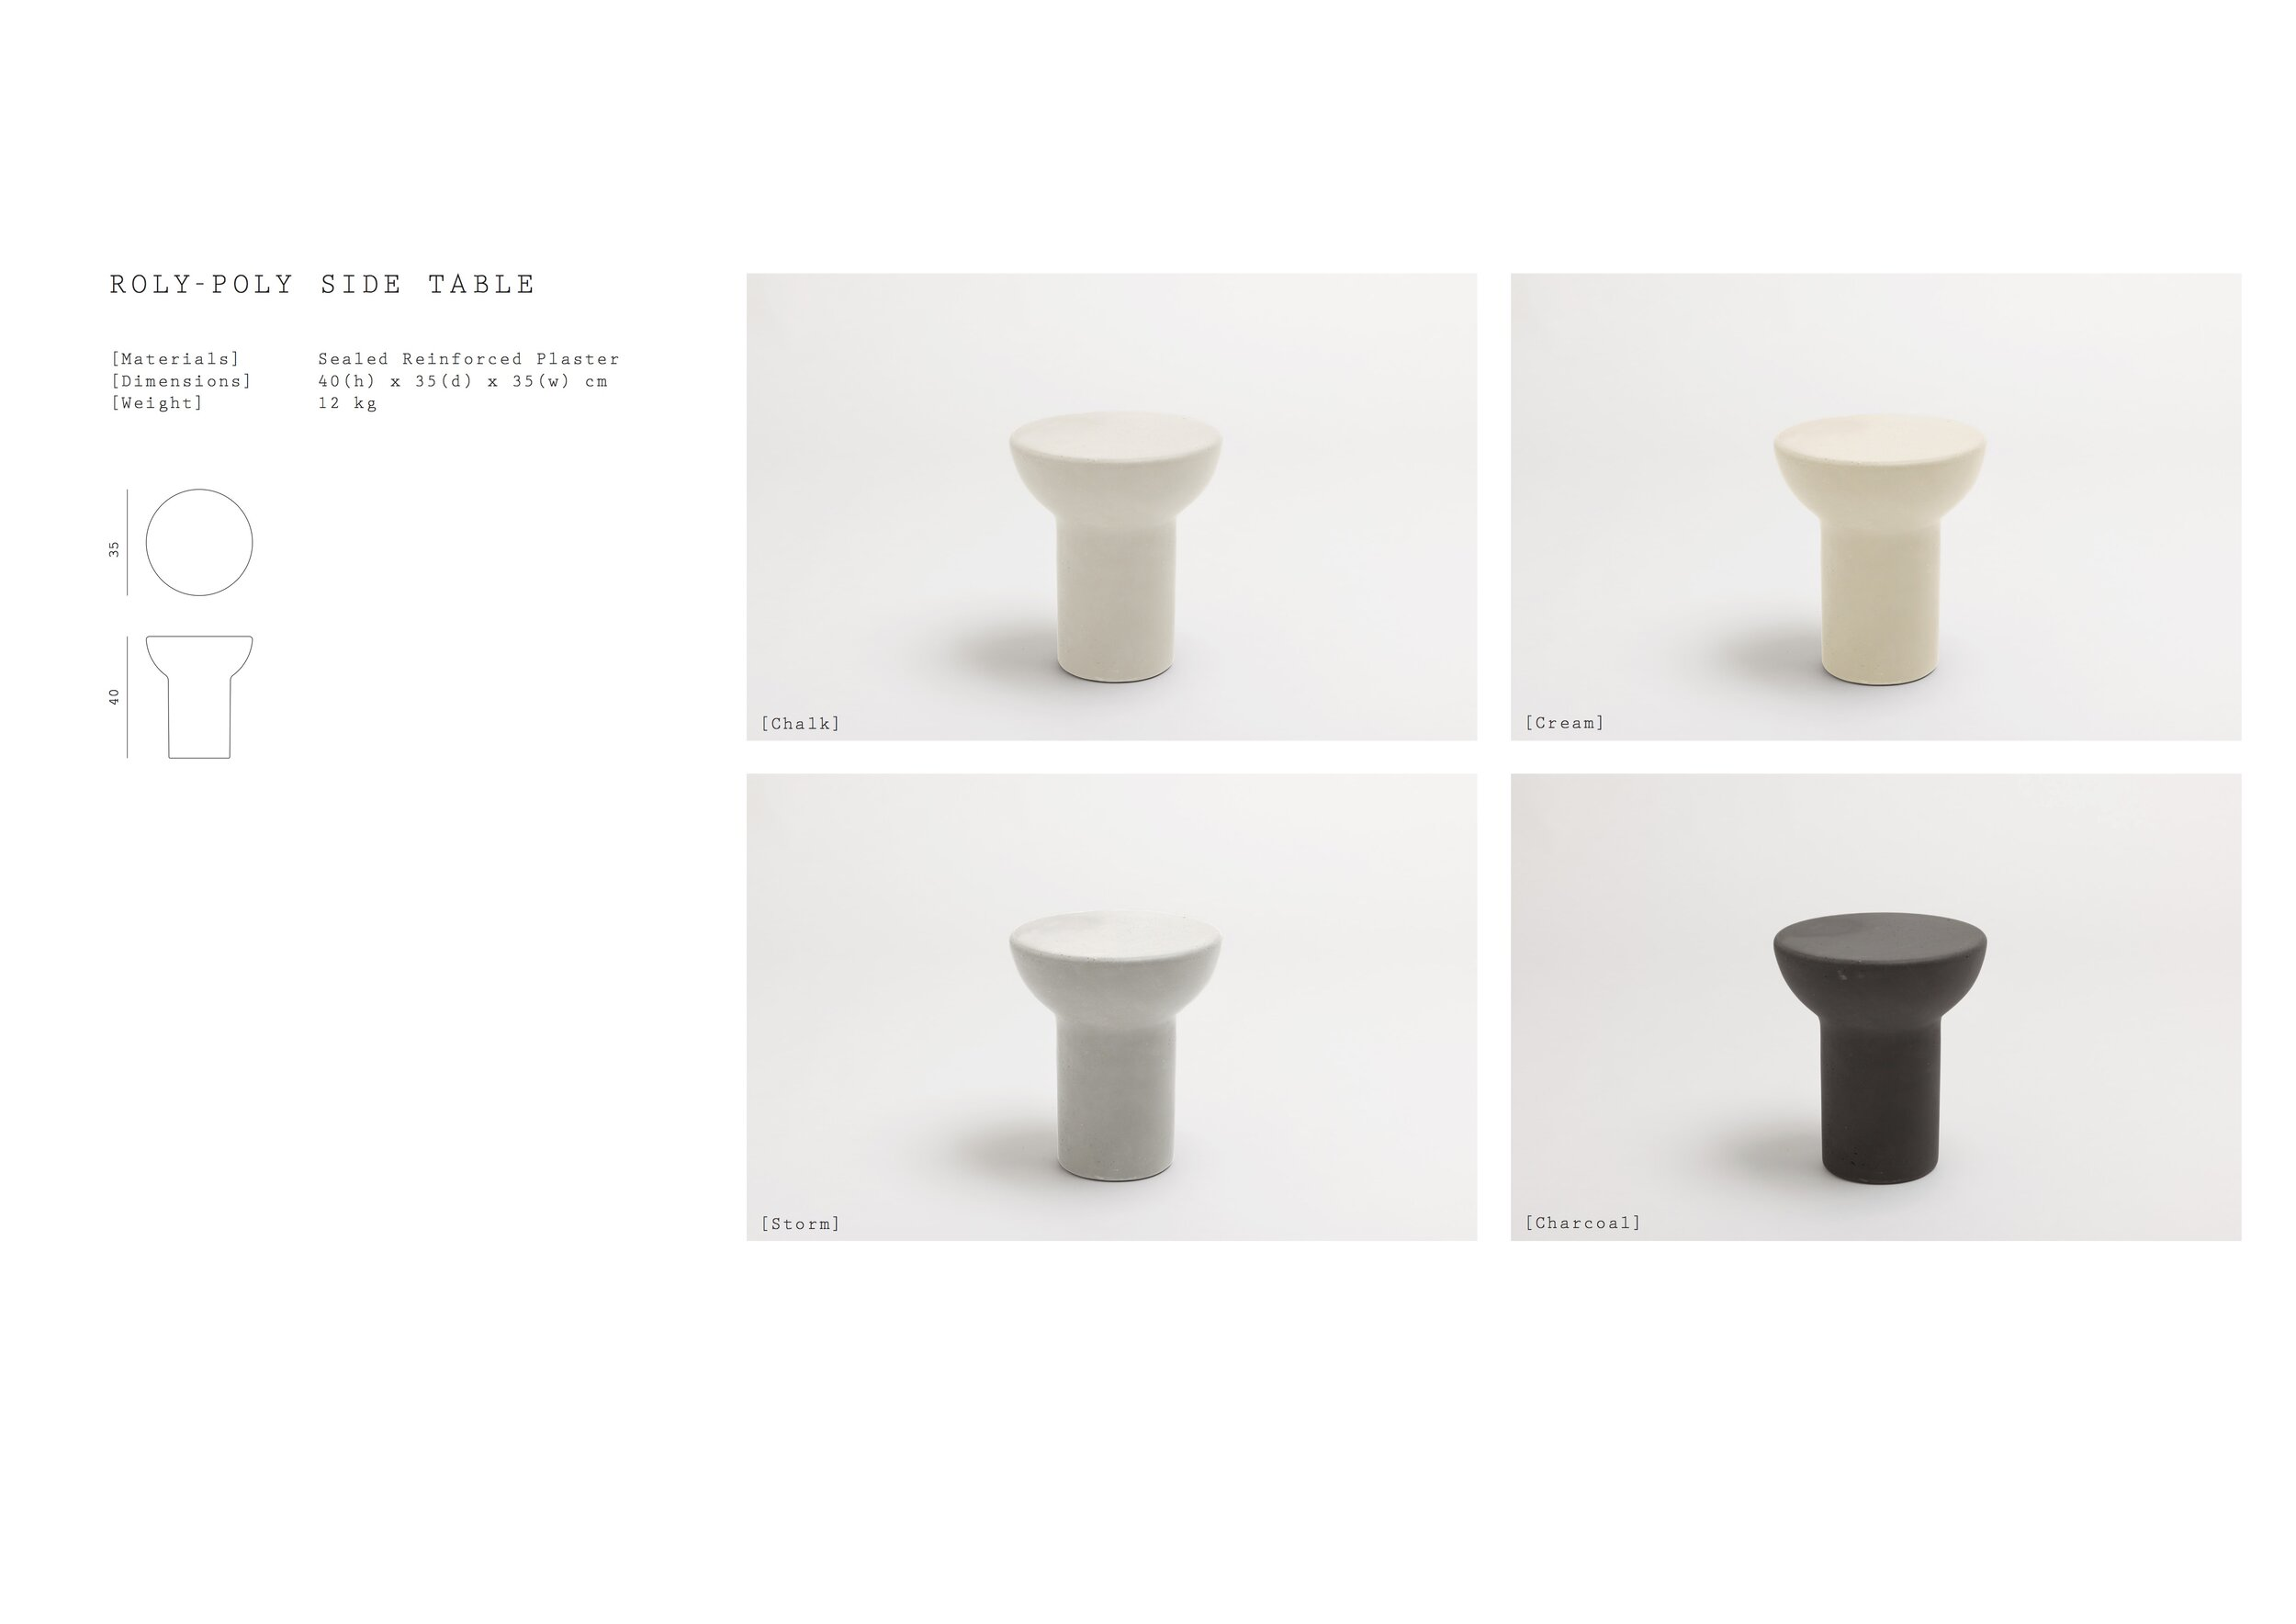 Catalogue_Unlimited_190912 _ROLY-_POLY_SIDE_TABLE copy.jpg